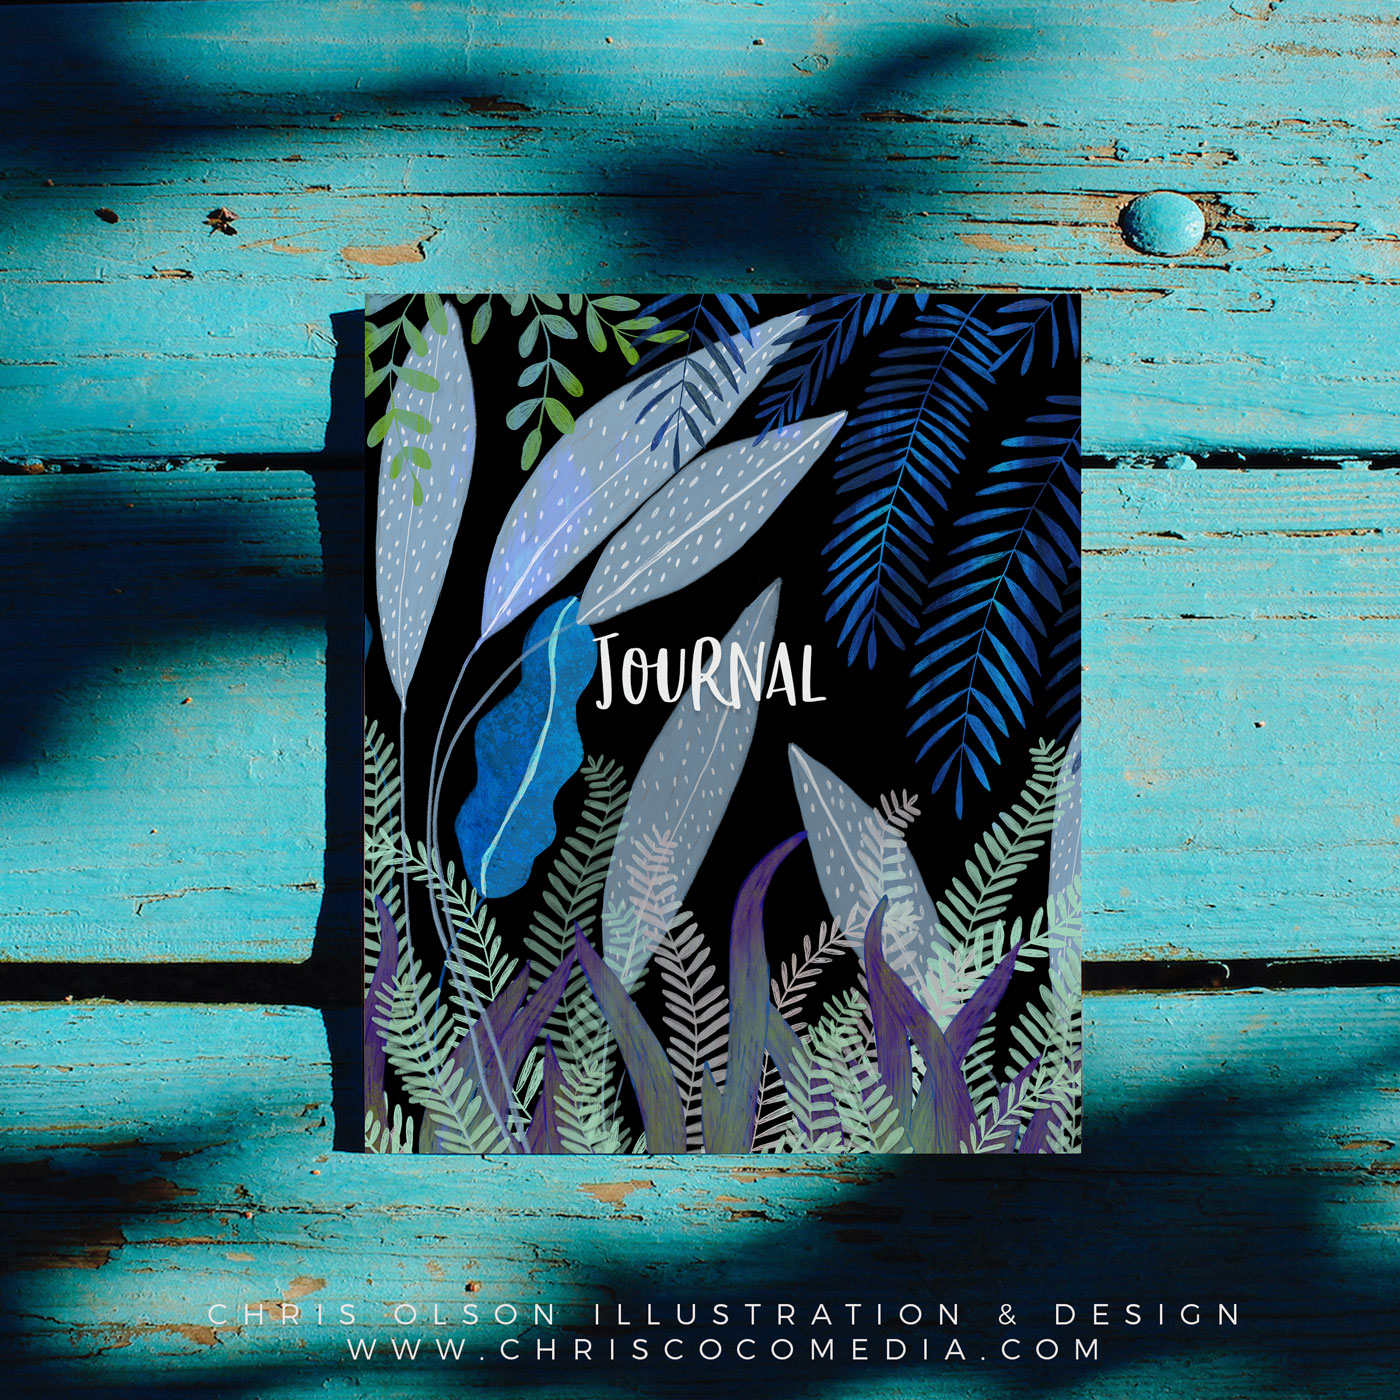 Tropical botanical illustration by Chris Olson on a journal.